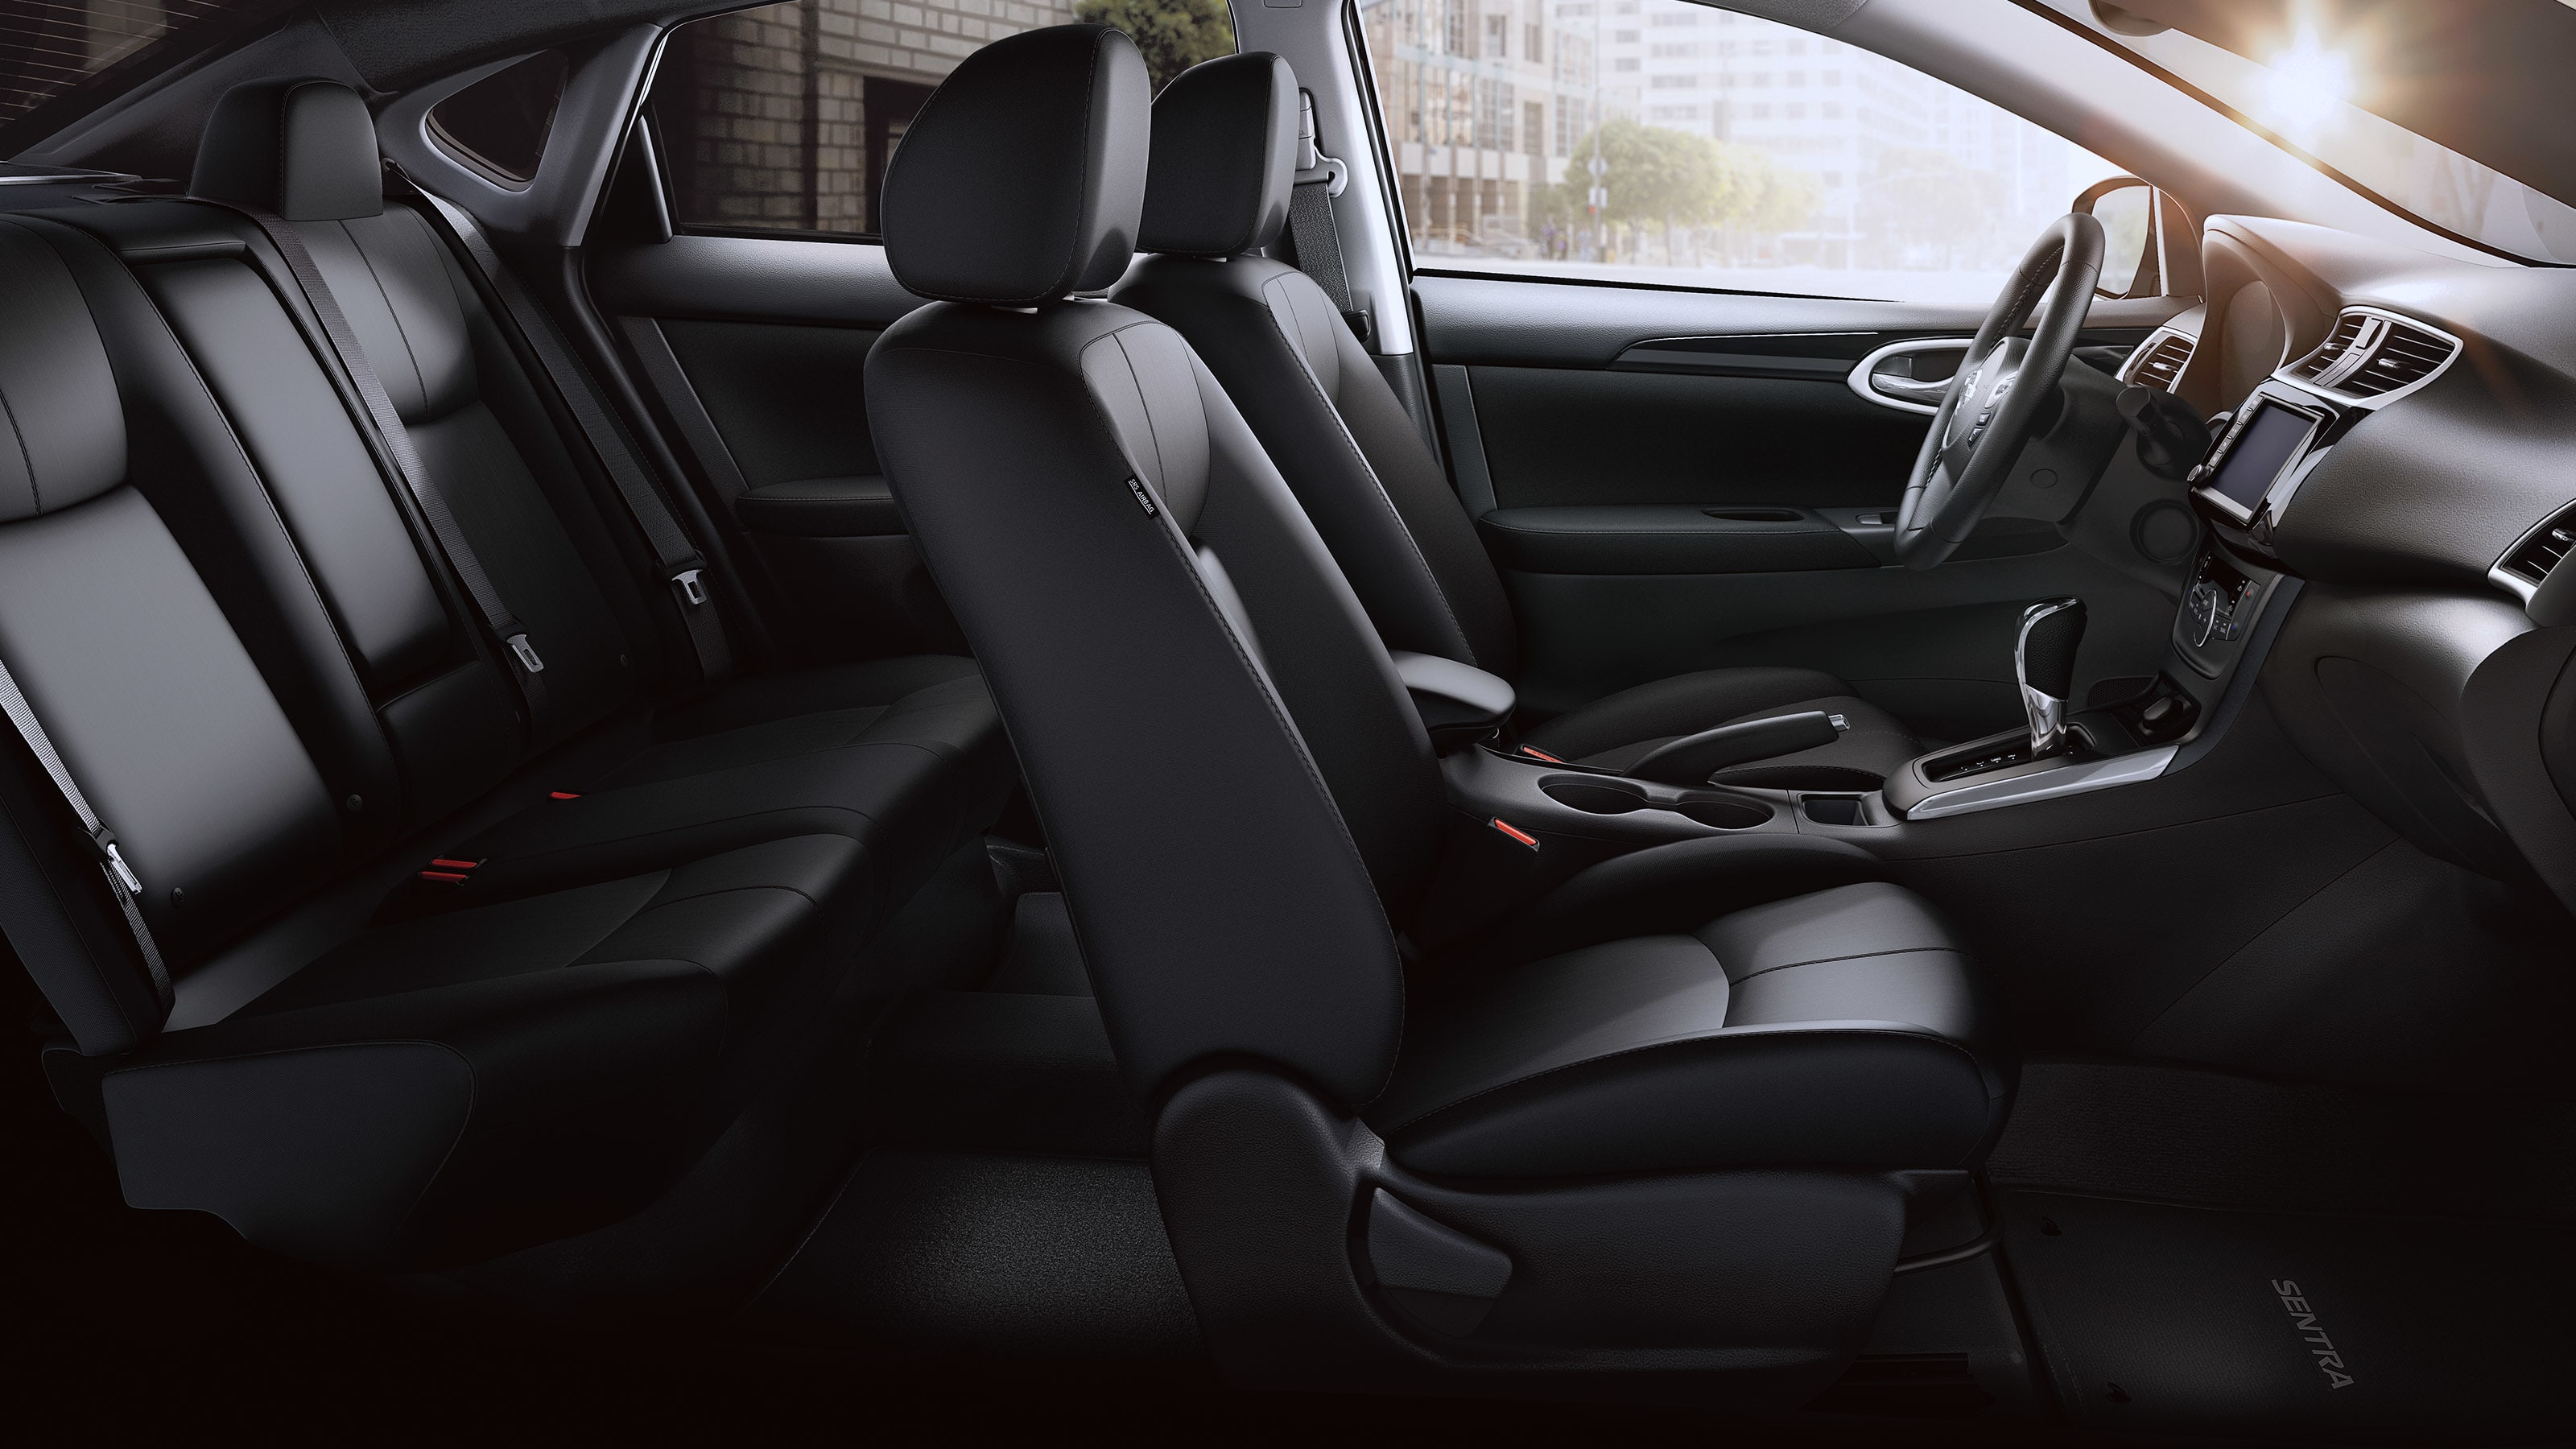 Spacious Cabin Room in the 2019 Sentra